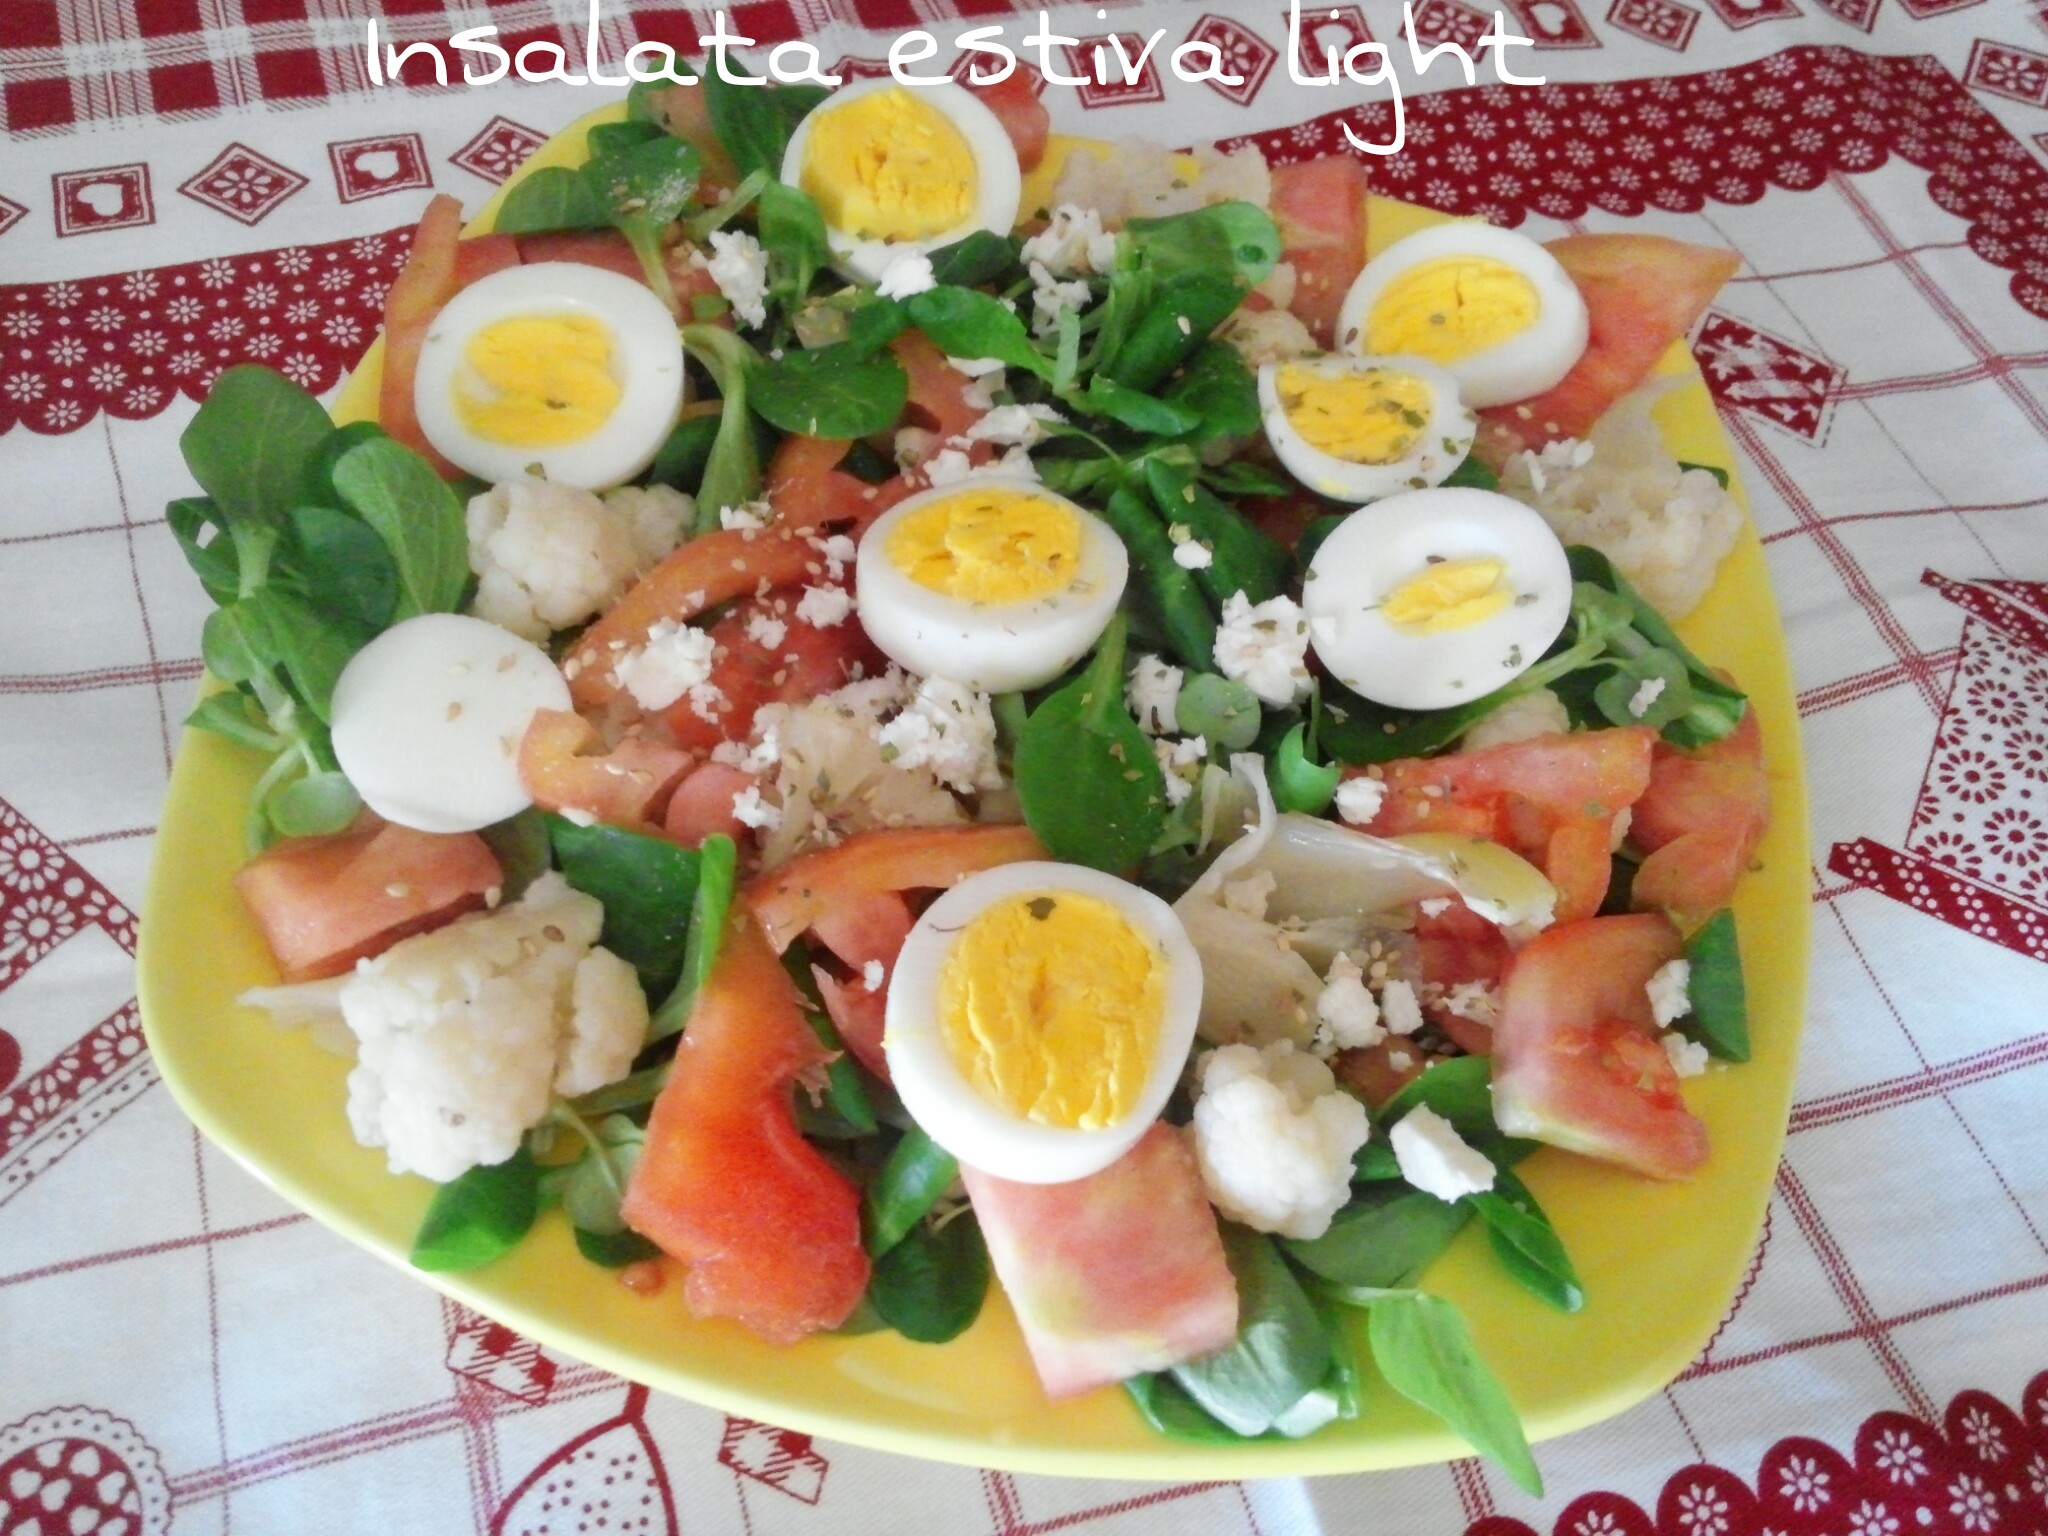 Insalata estiva light